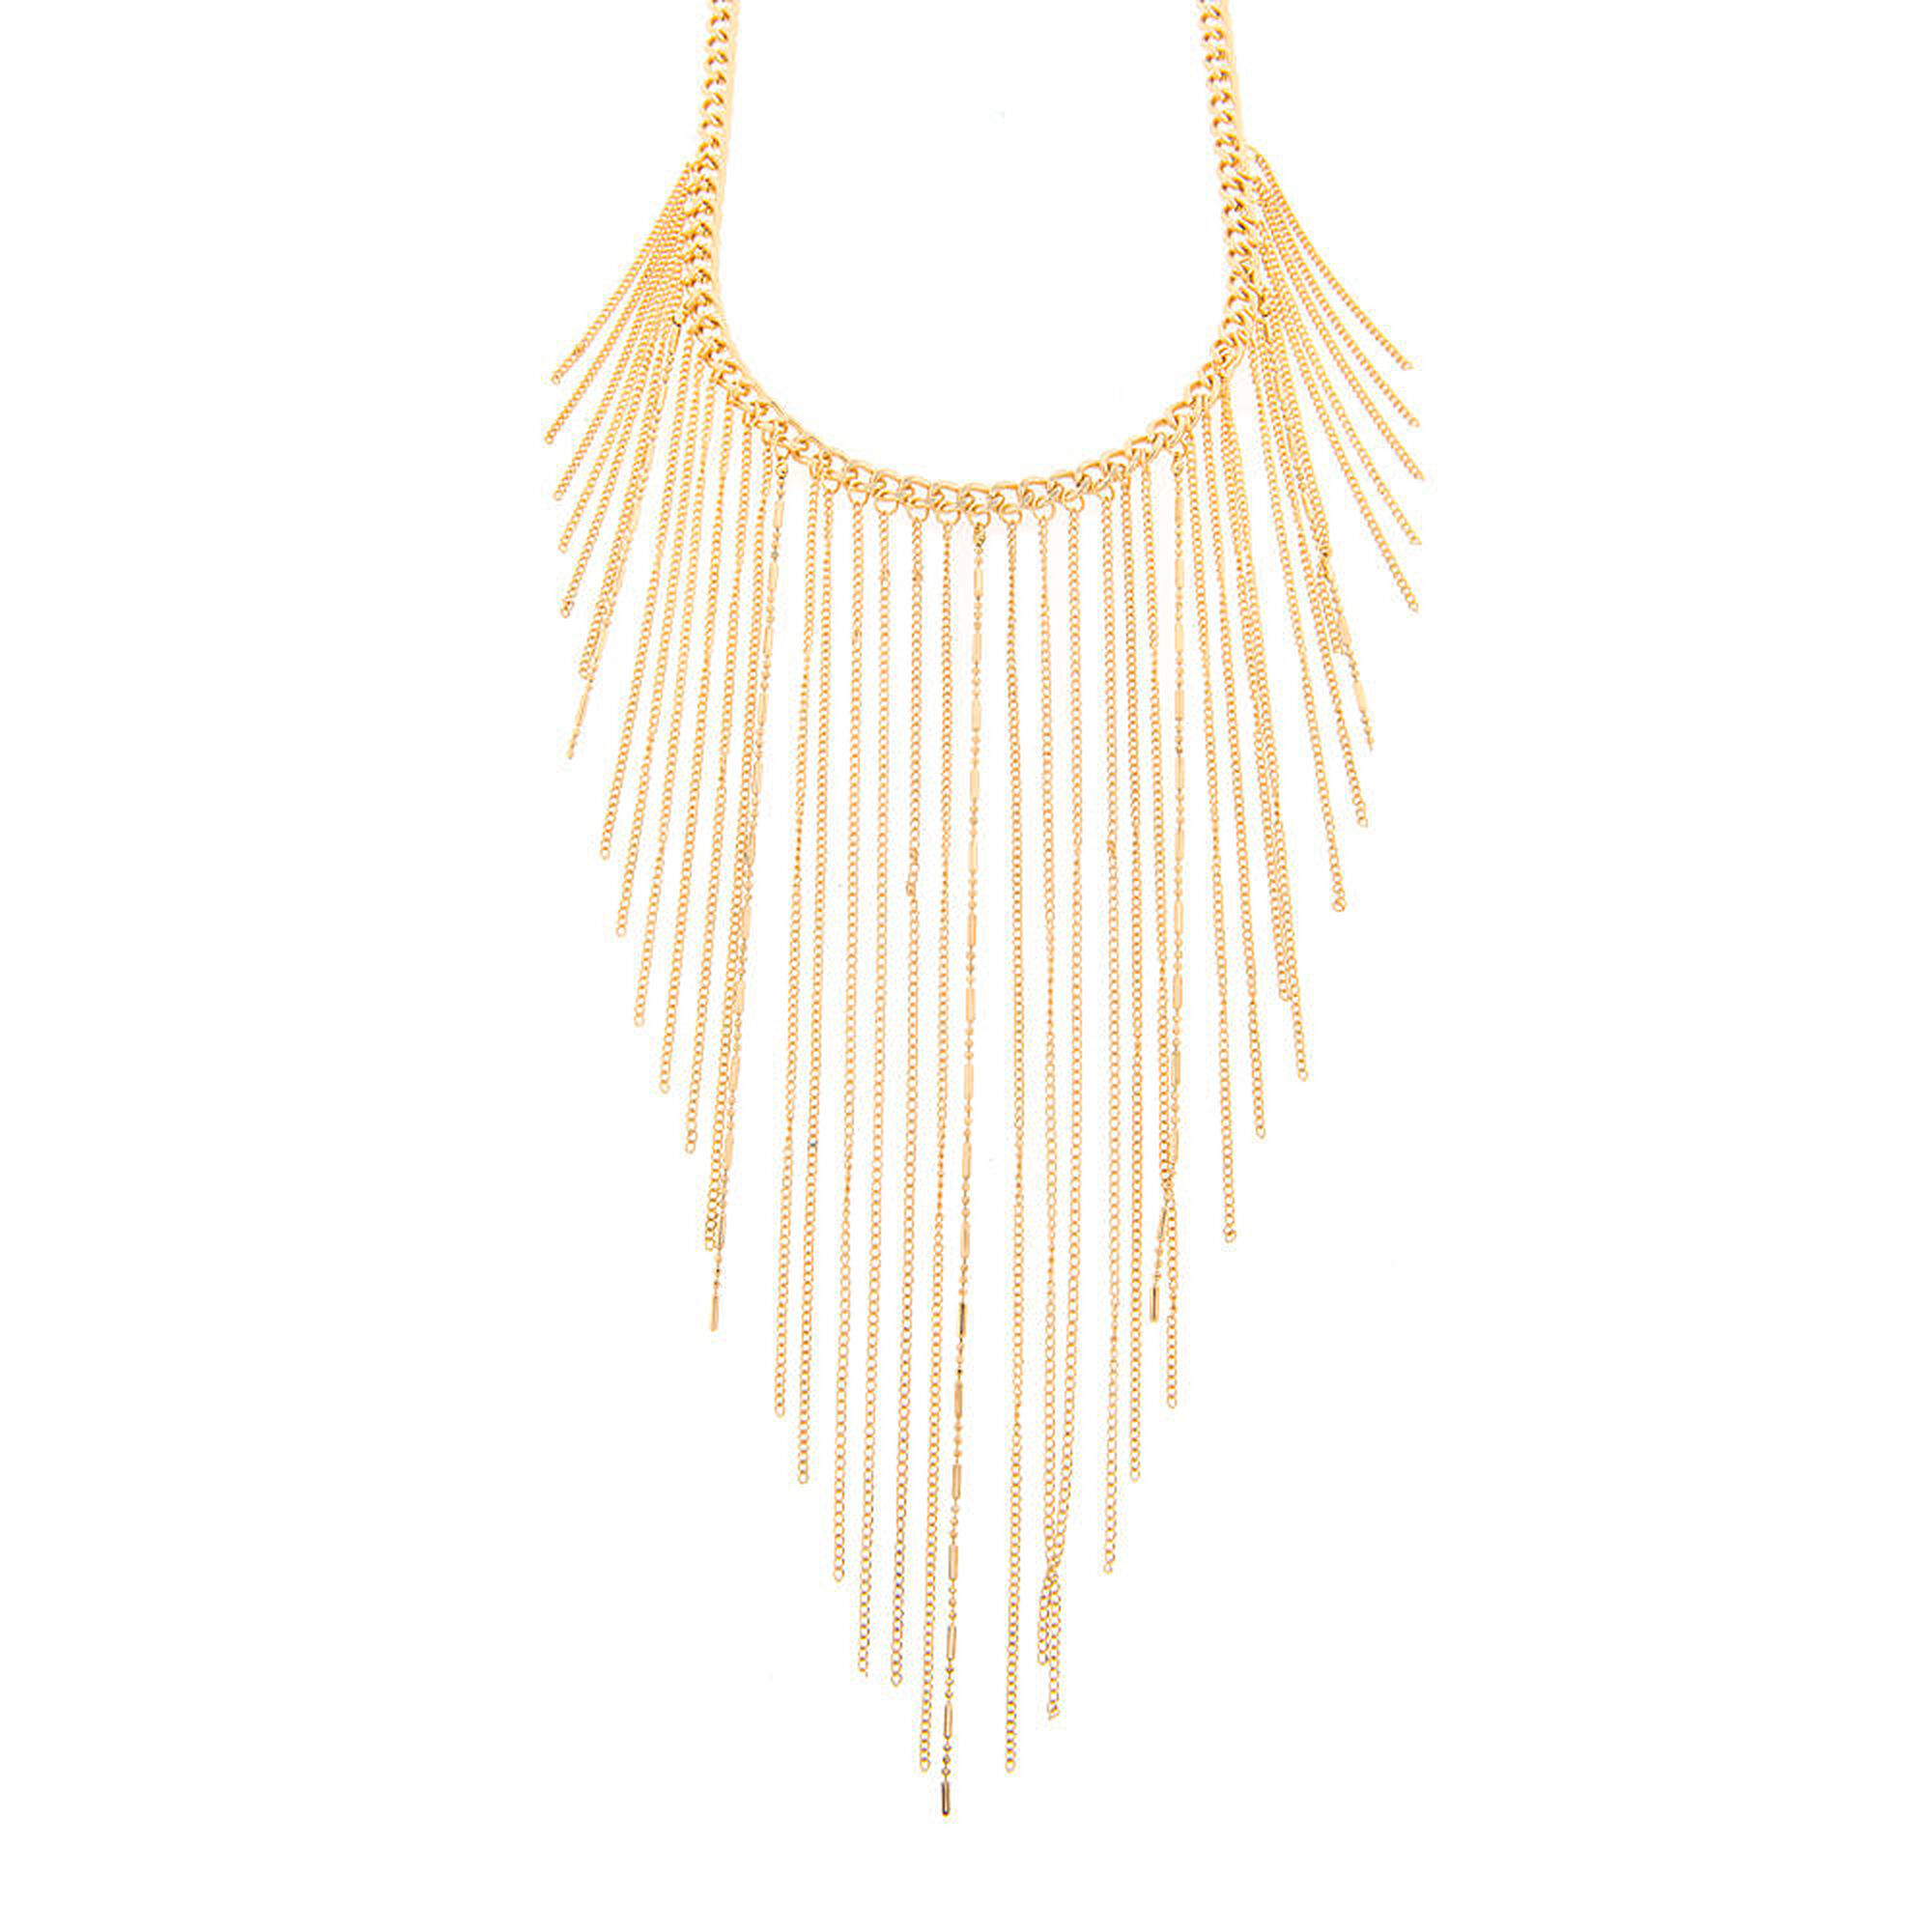 glory matte gold the necklace honor products link classic chain new